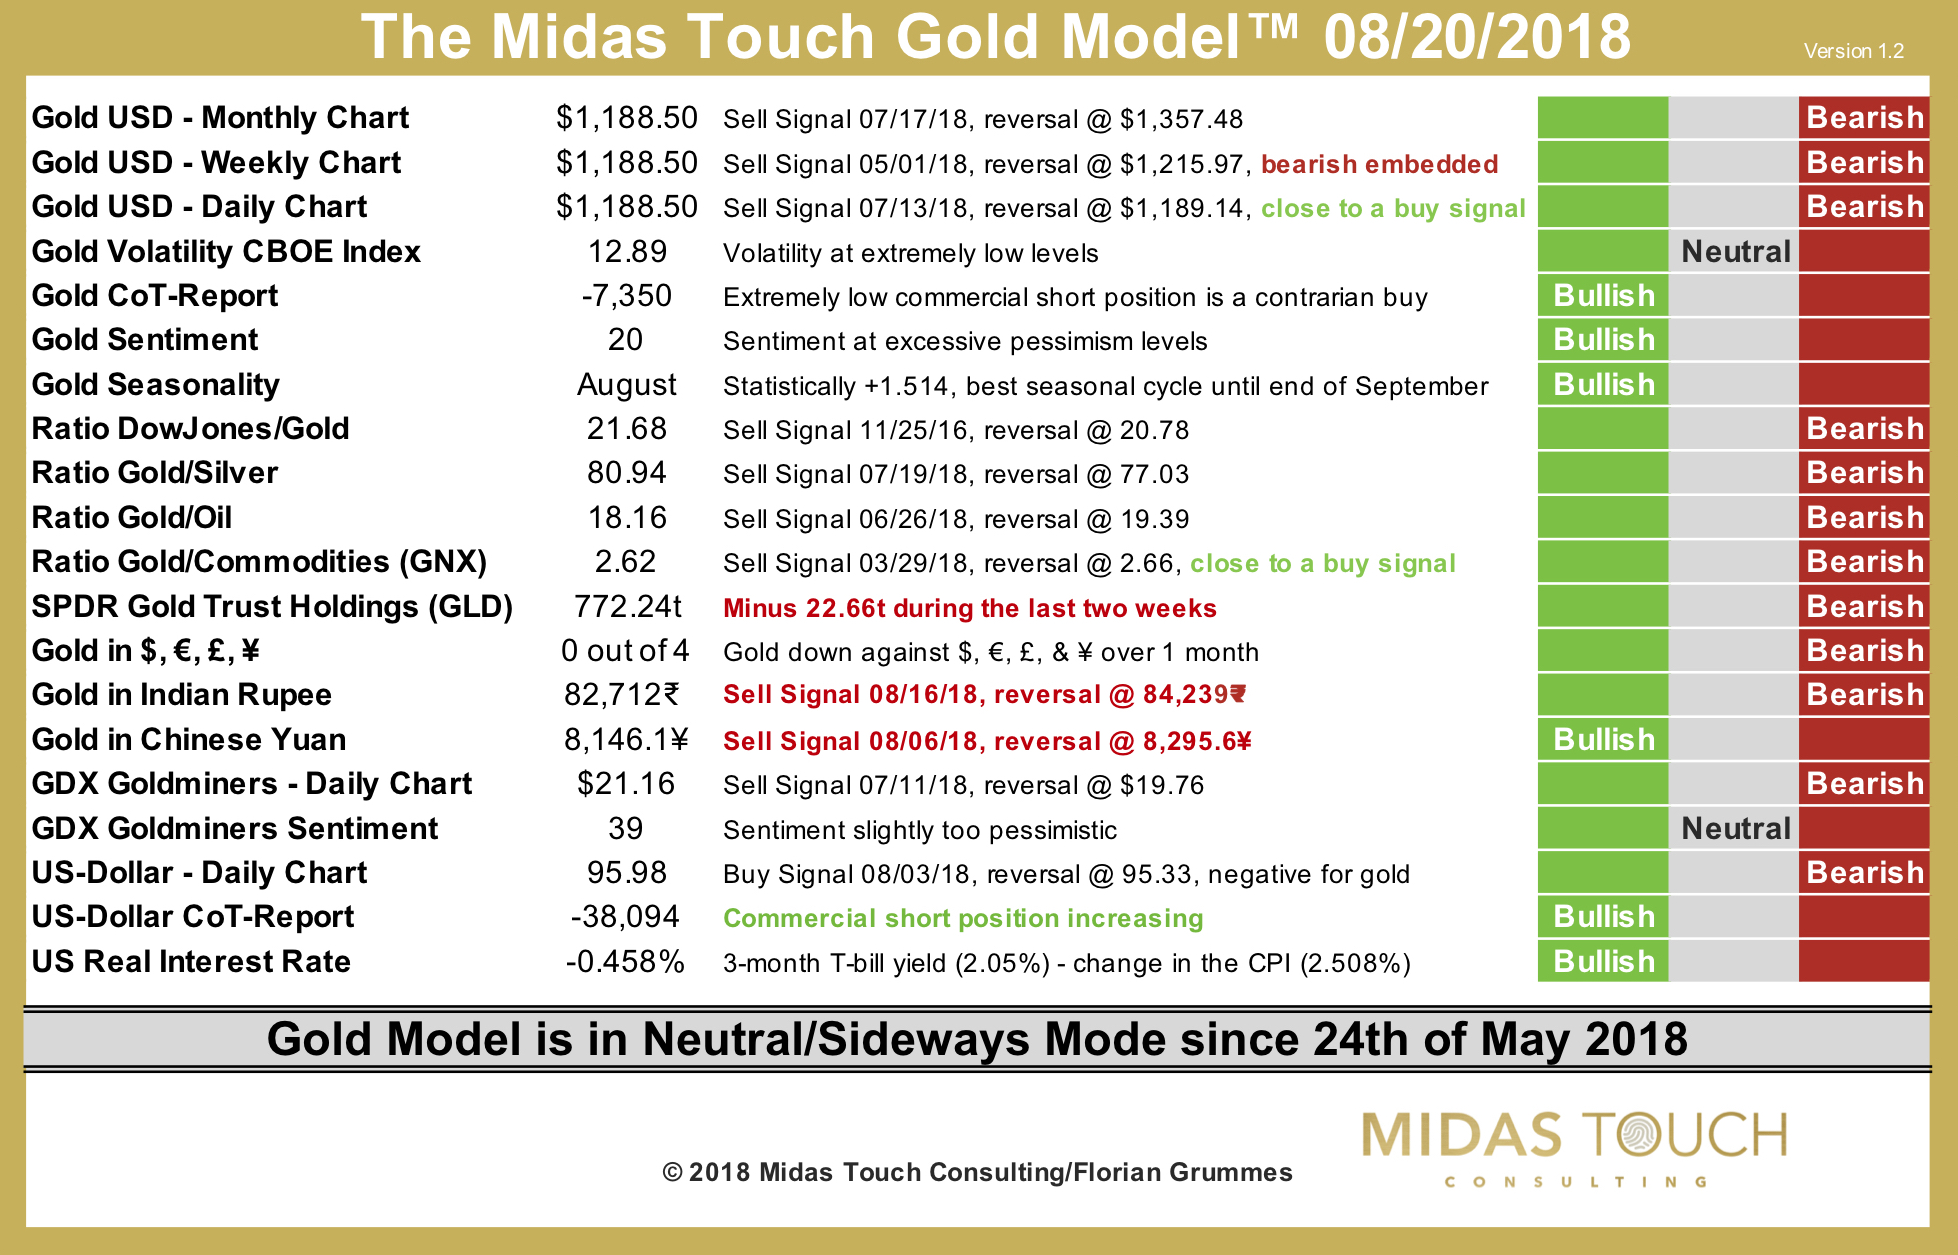 The Midas Touch Gold Model™ as of August 20th, 2018